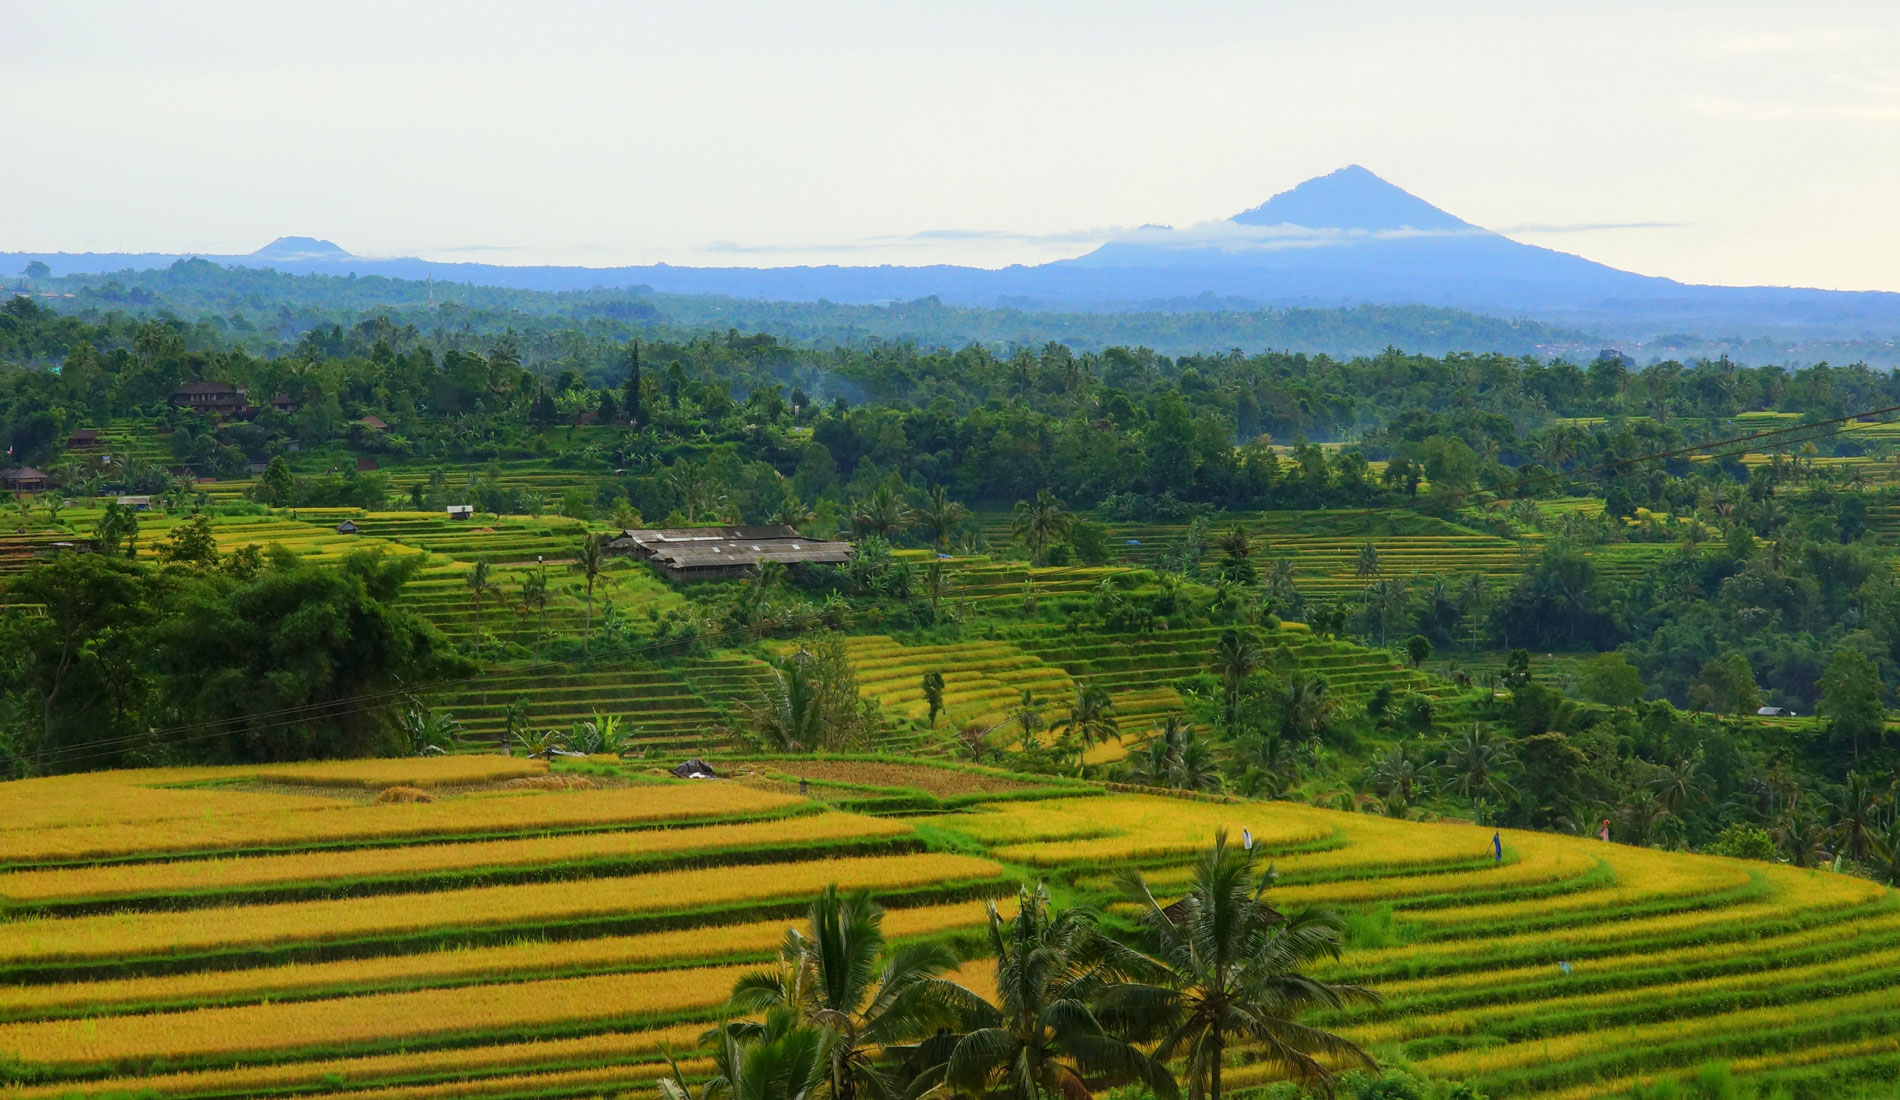 Jatluwih - Things To Do in Bali Tours Activities